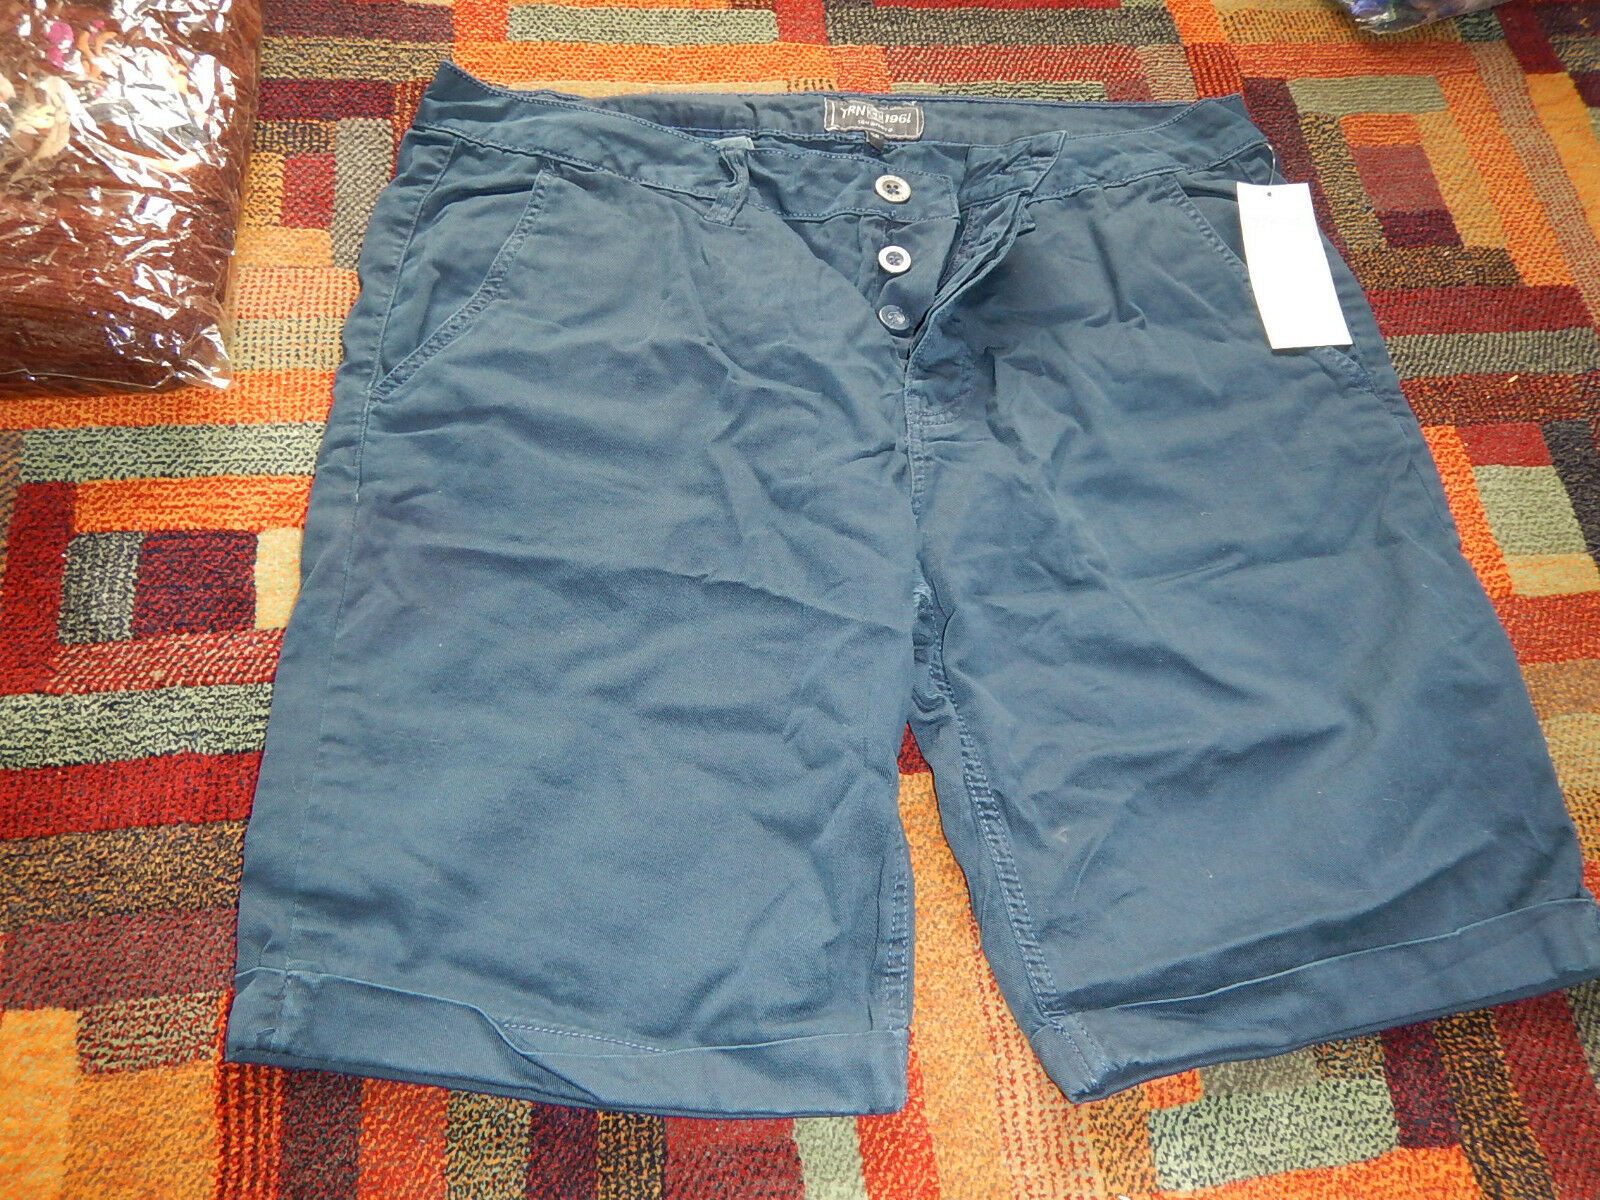 Shorts GR 52 men shorts new with tags W W W 34-36 EU 52 new with tags NAVY DARK Blau  | Günstige Bestellung